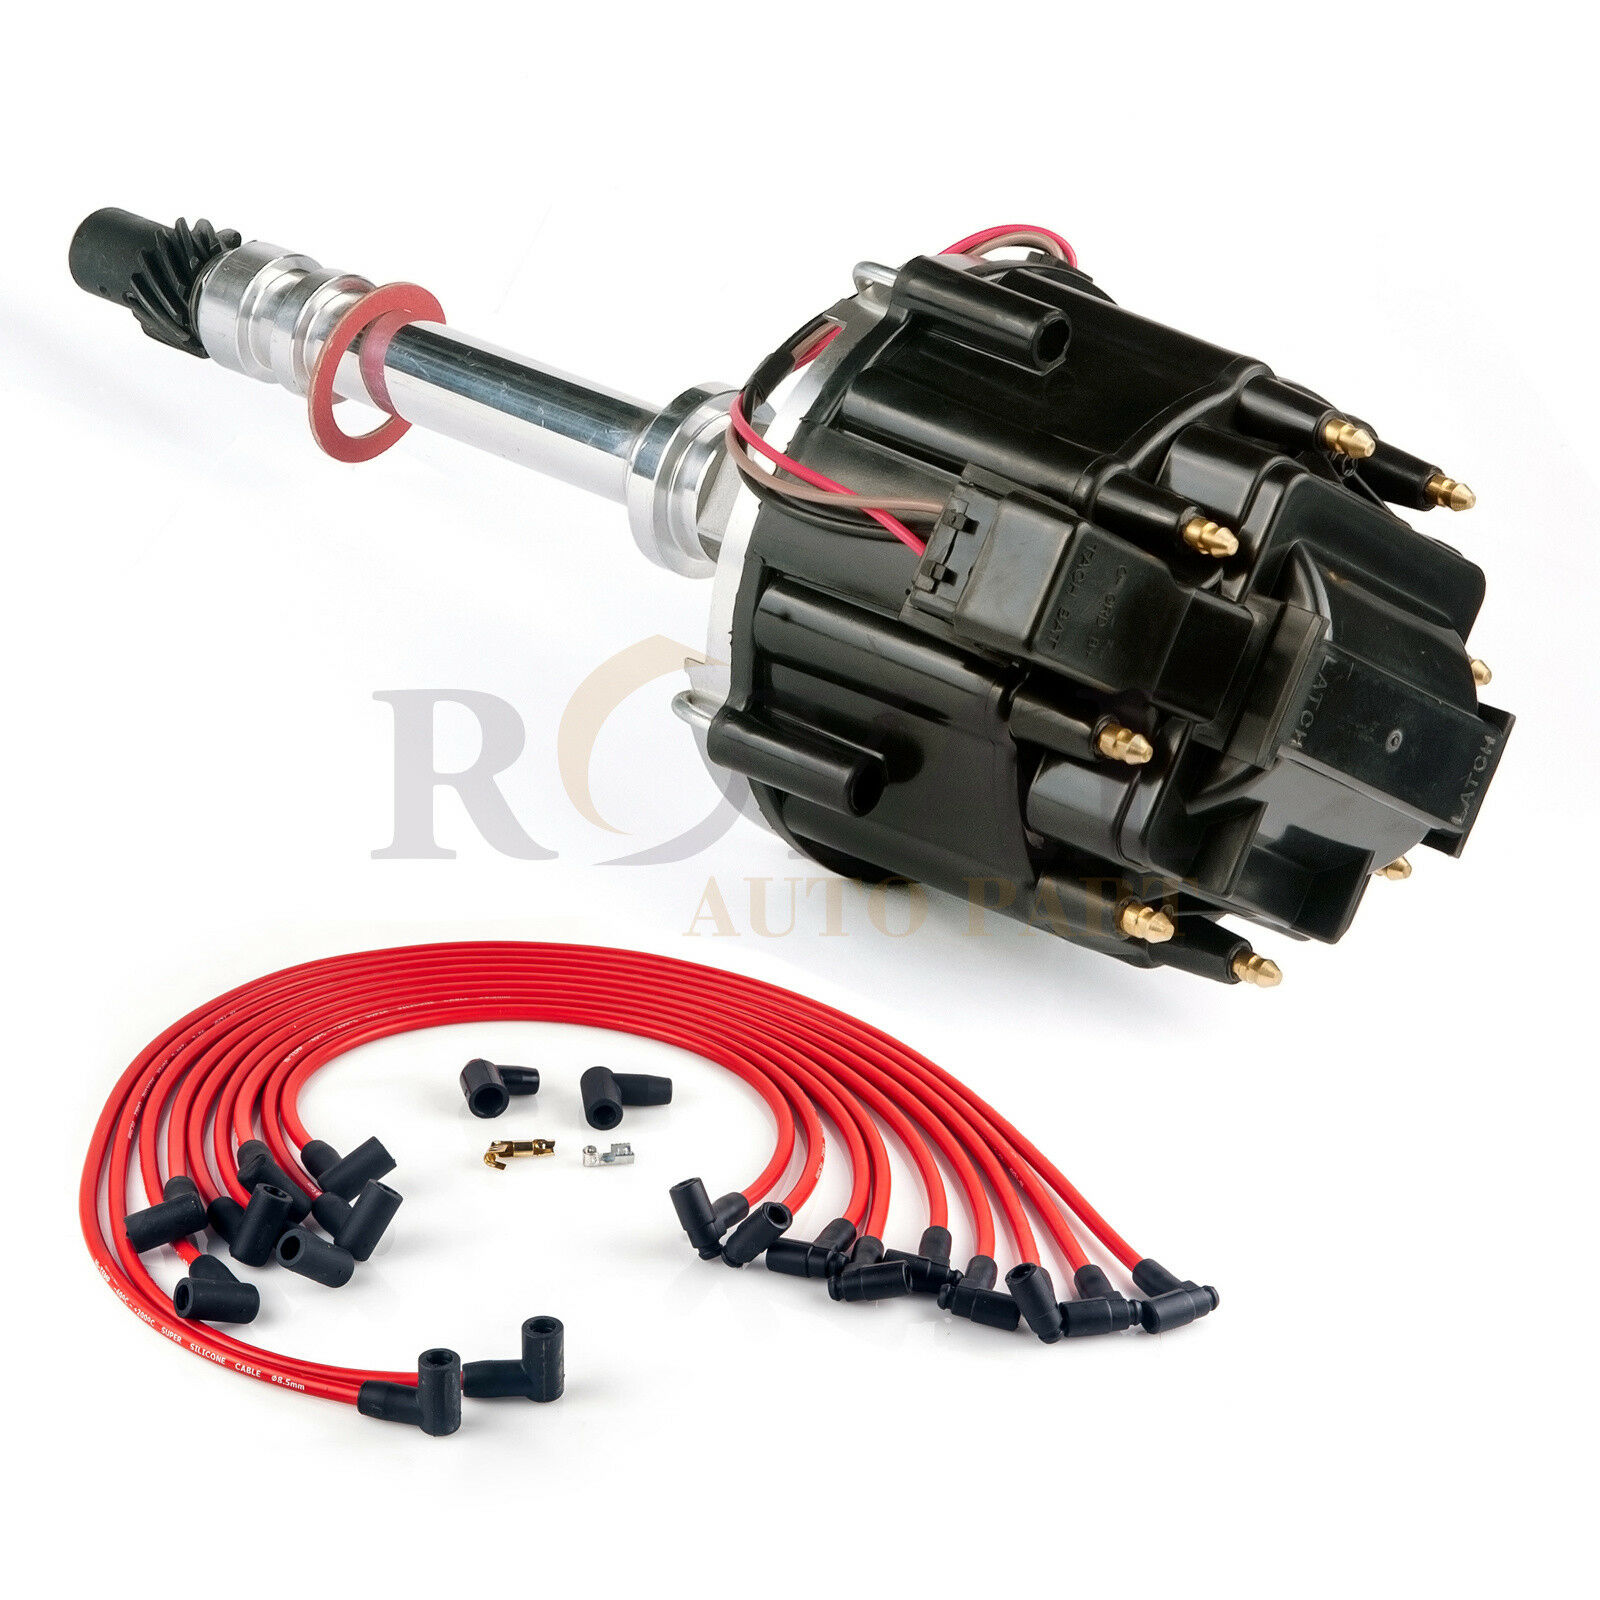 hight resolution of new chevy sbc 283 305 327 350 400 hei black distributor spark plug wires kit 1 of 11free shipping